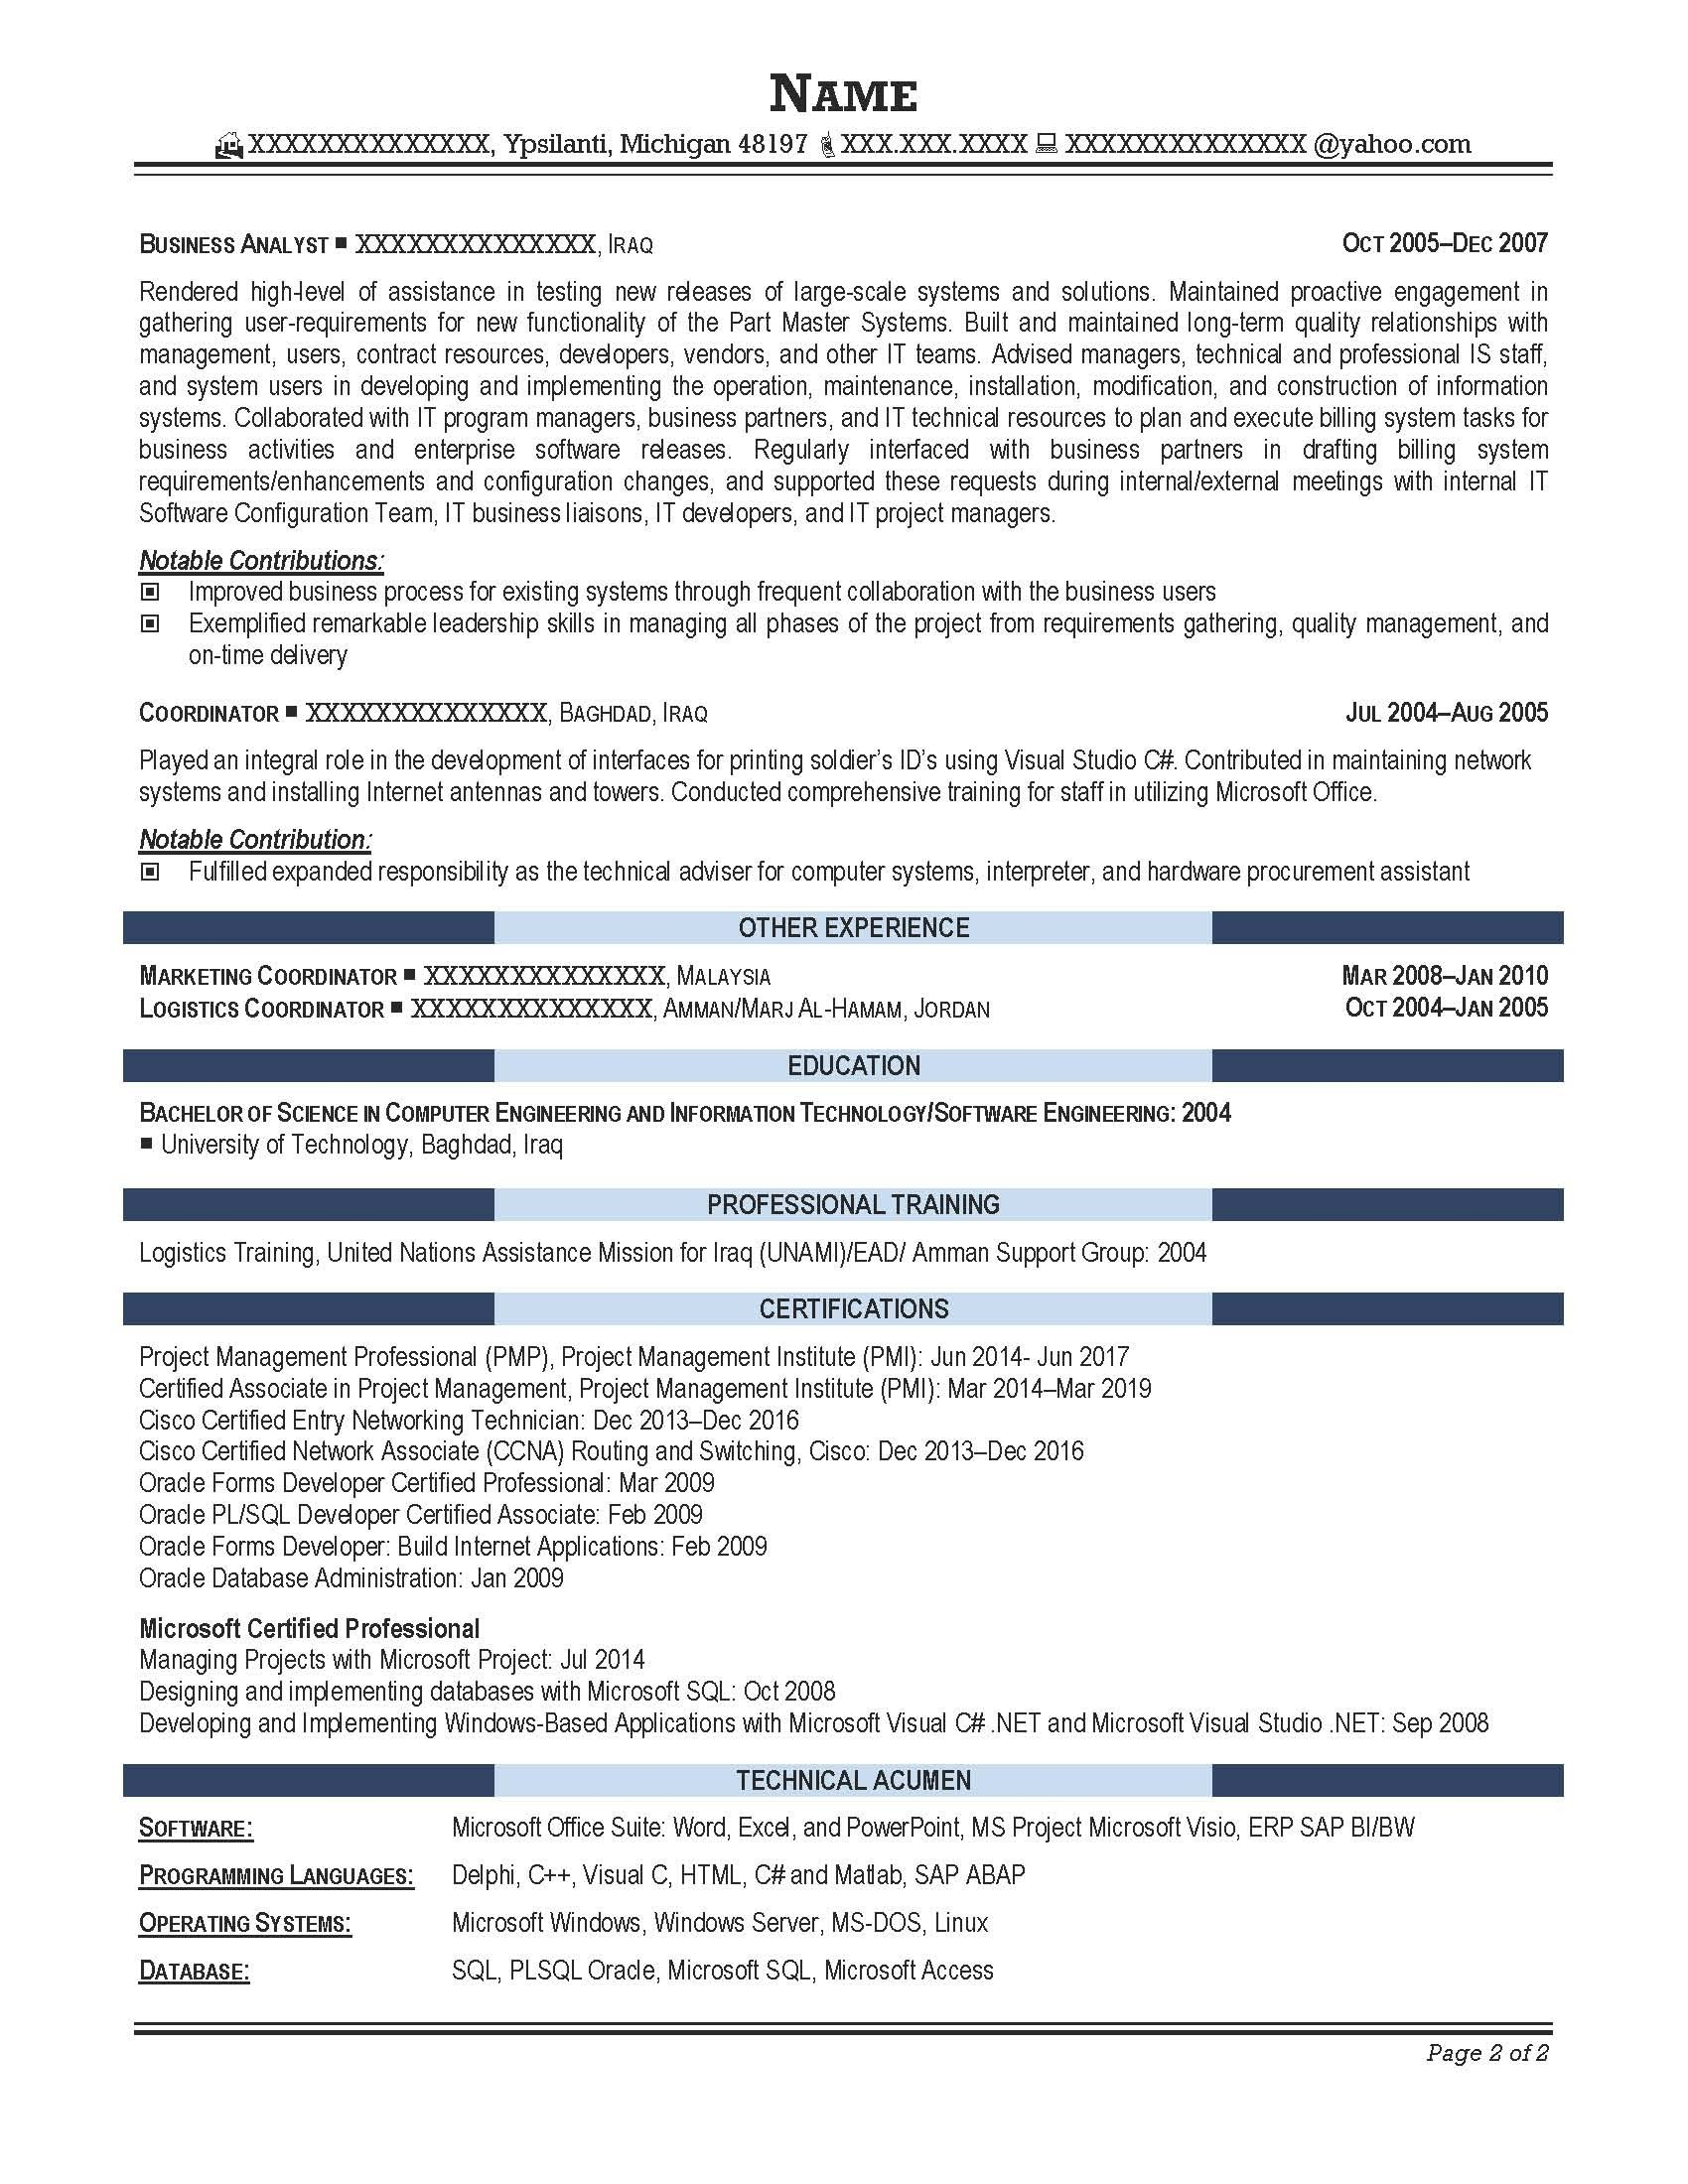 Data Analysis Resume - Data Analysis Resume New Data Analyst Resume New why Do We Buy the